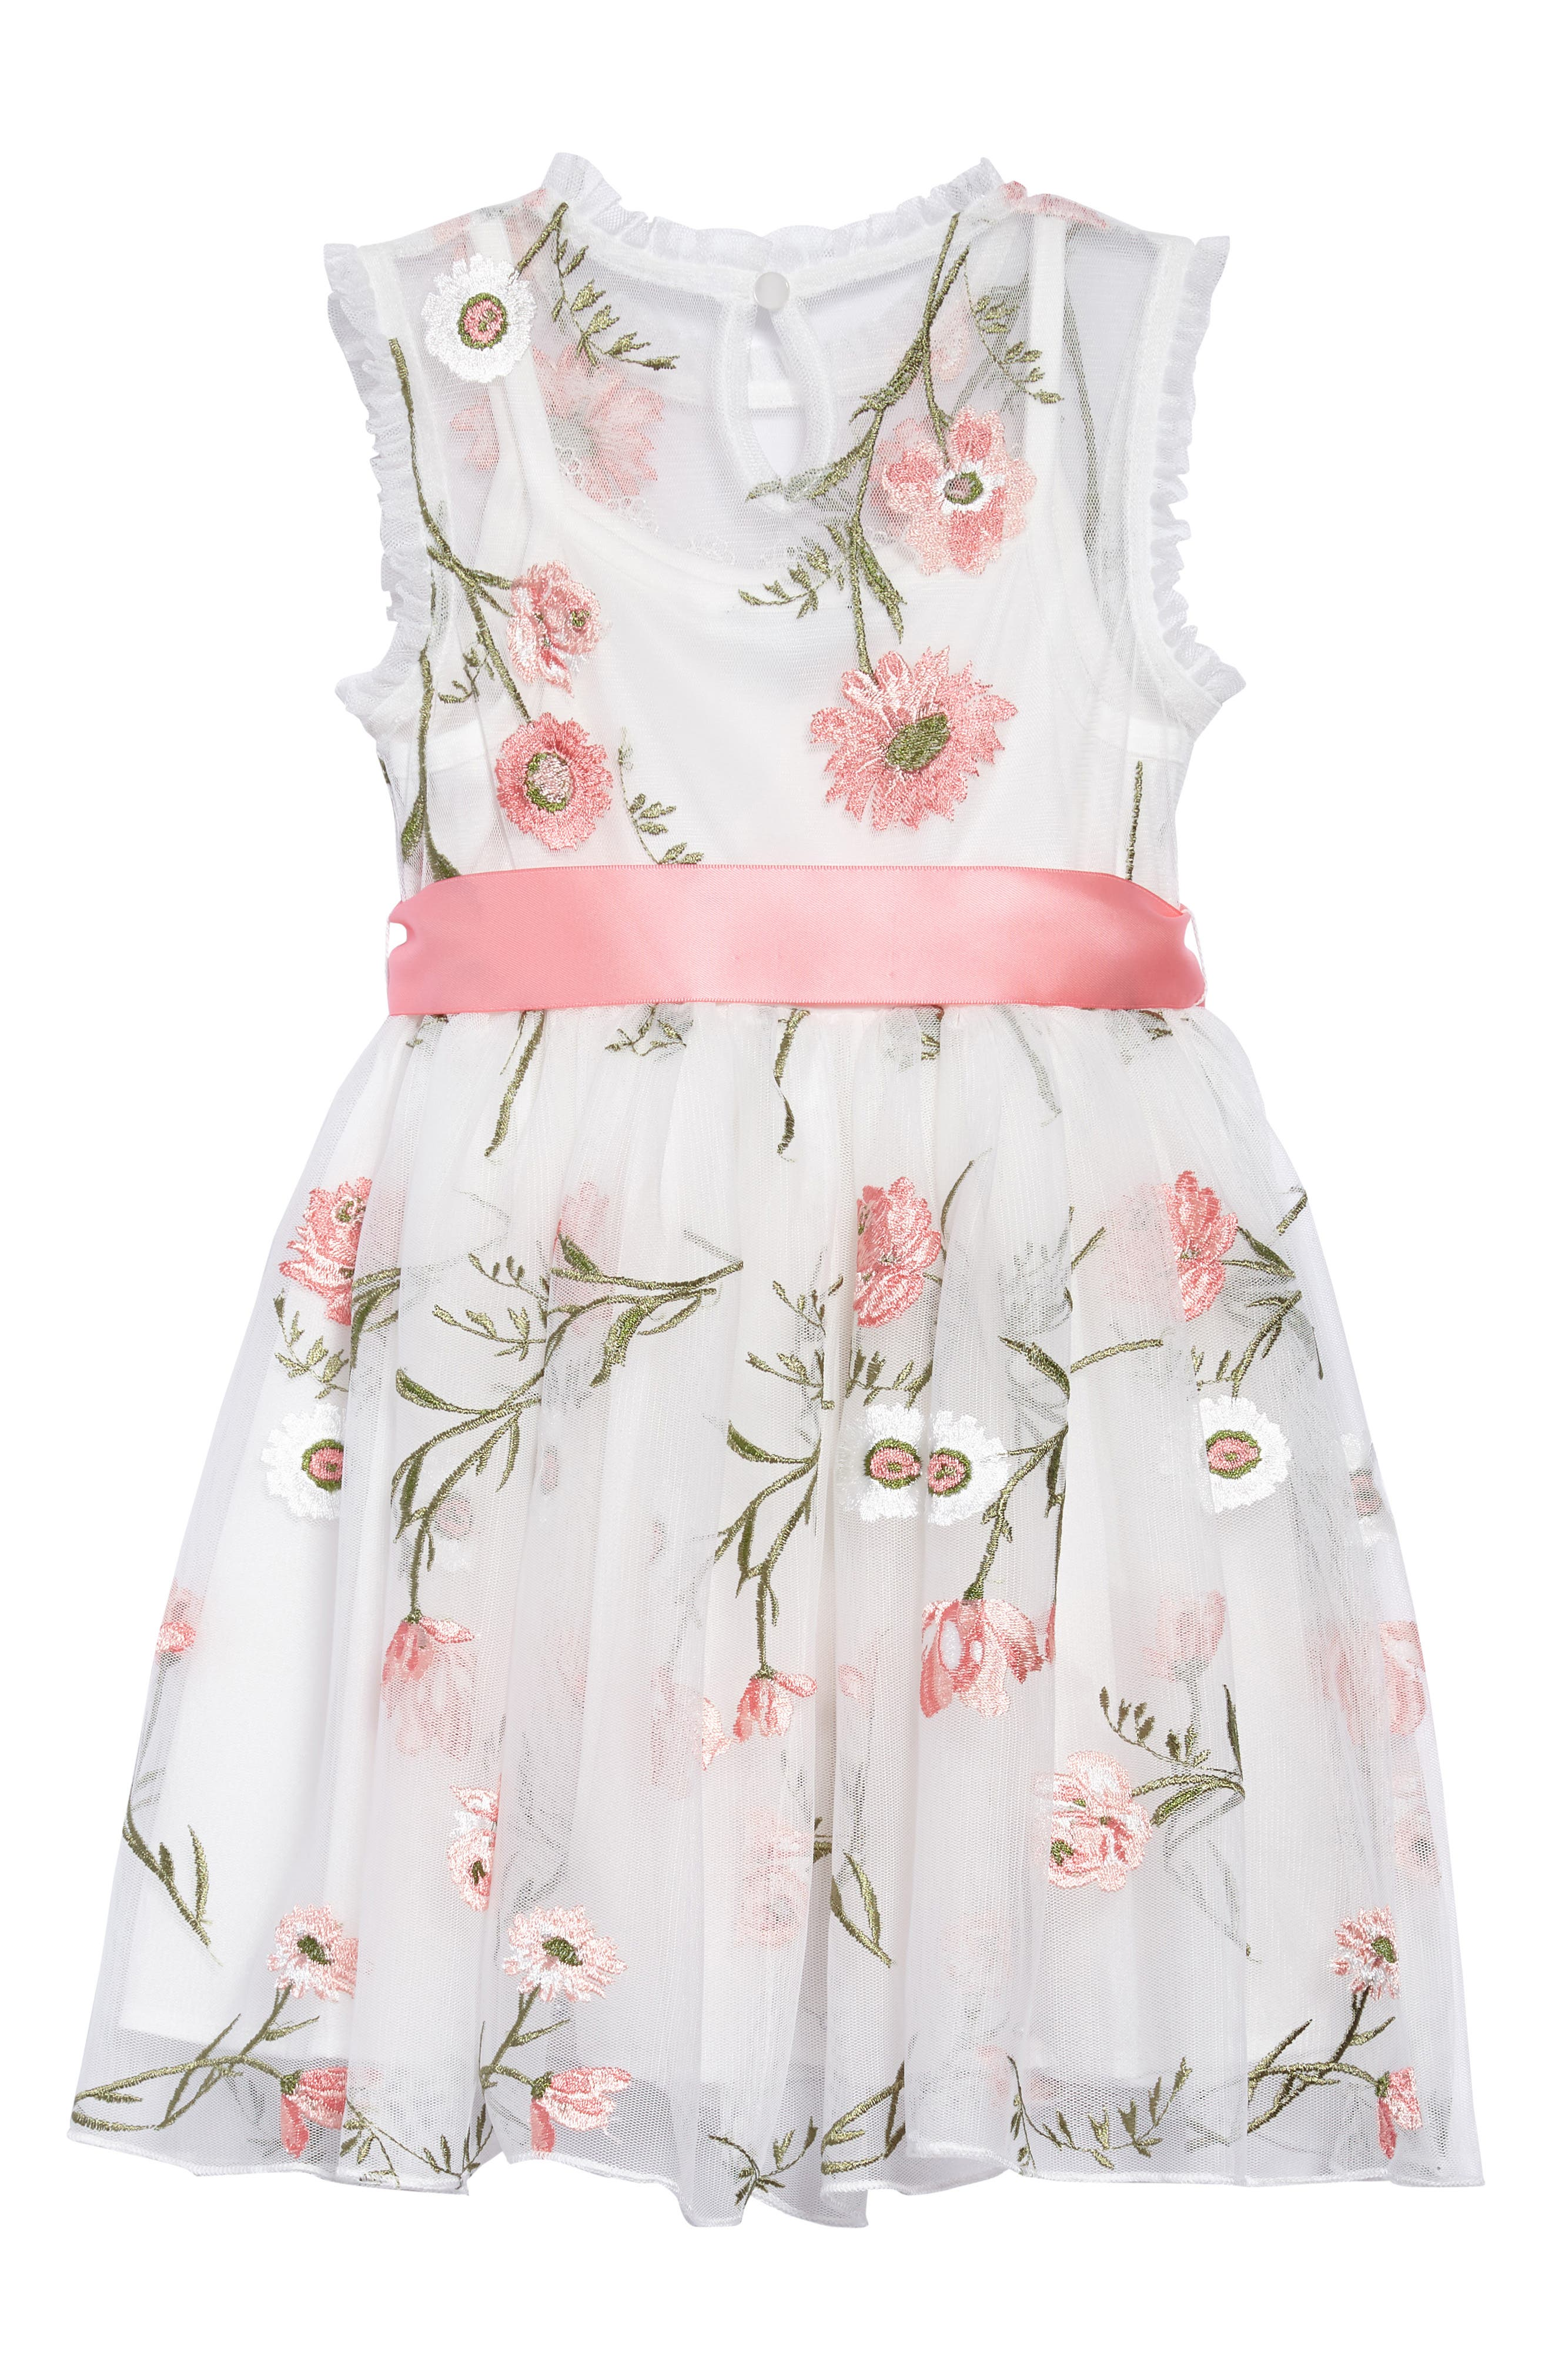 Embroidered Flower Dress,                             Alternate thumbnail 2, color,                             White/ Coral